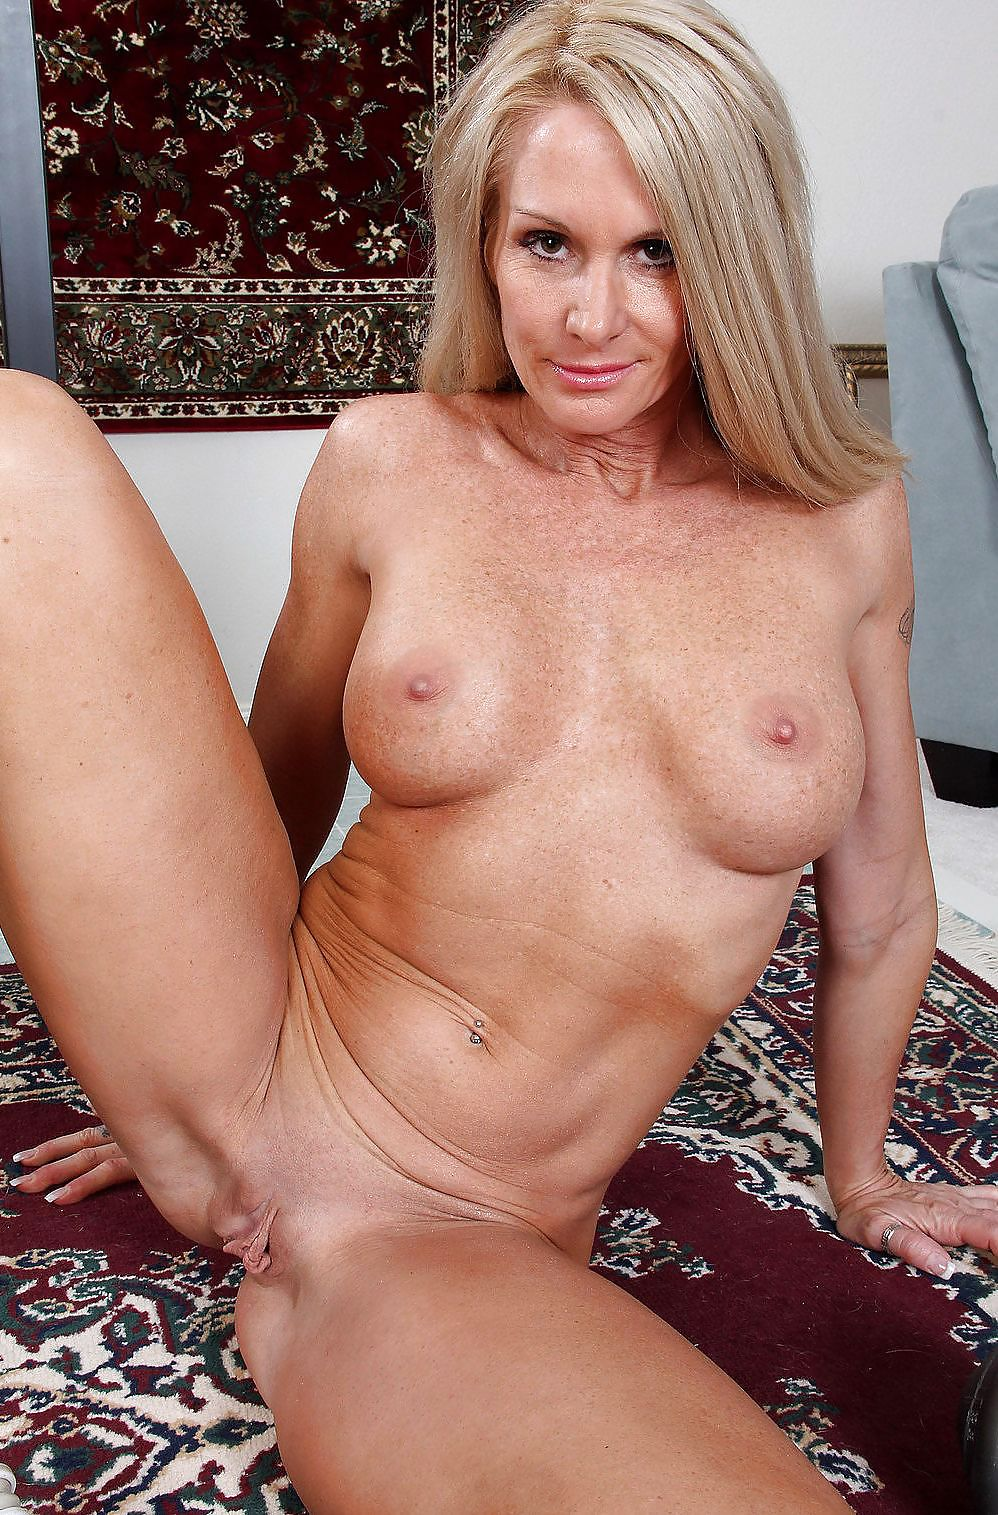 strict-milf-nude-hot-rugby-hairy-gif